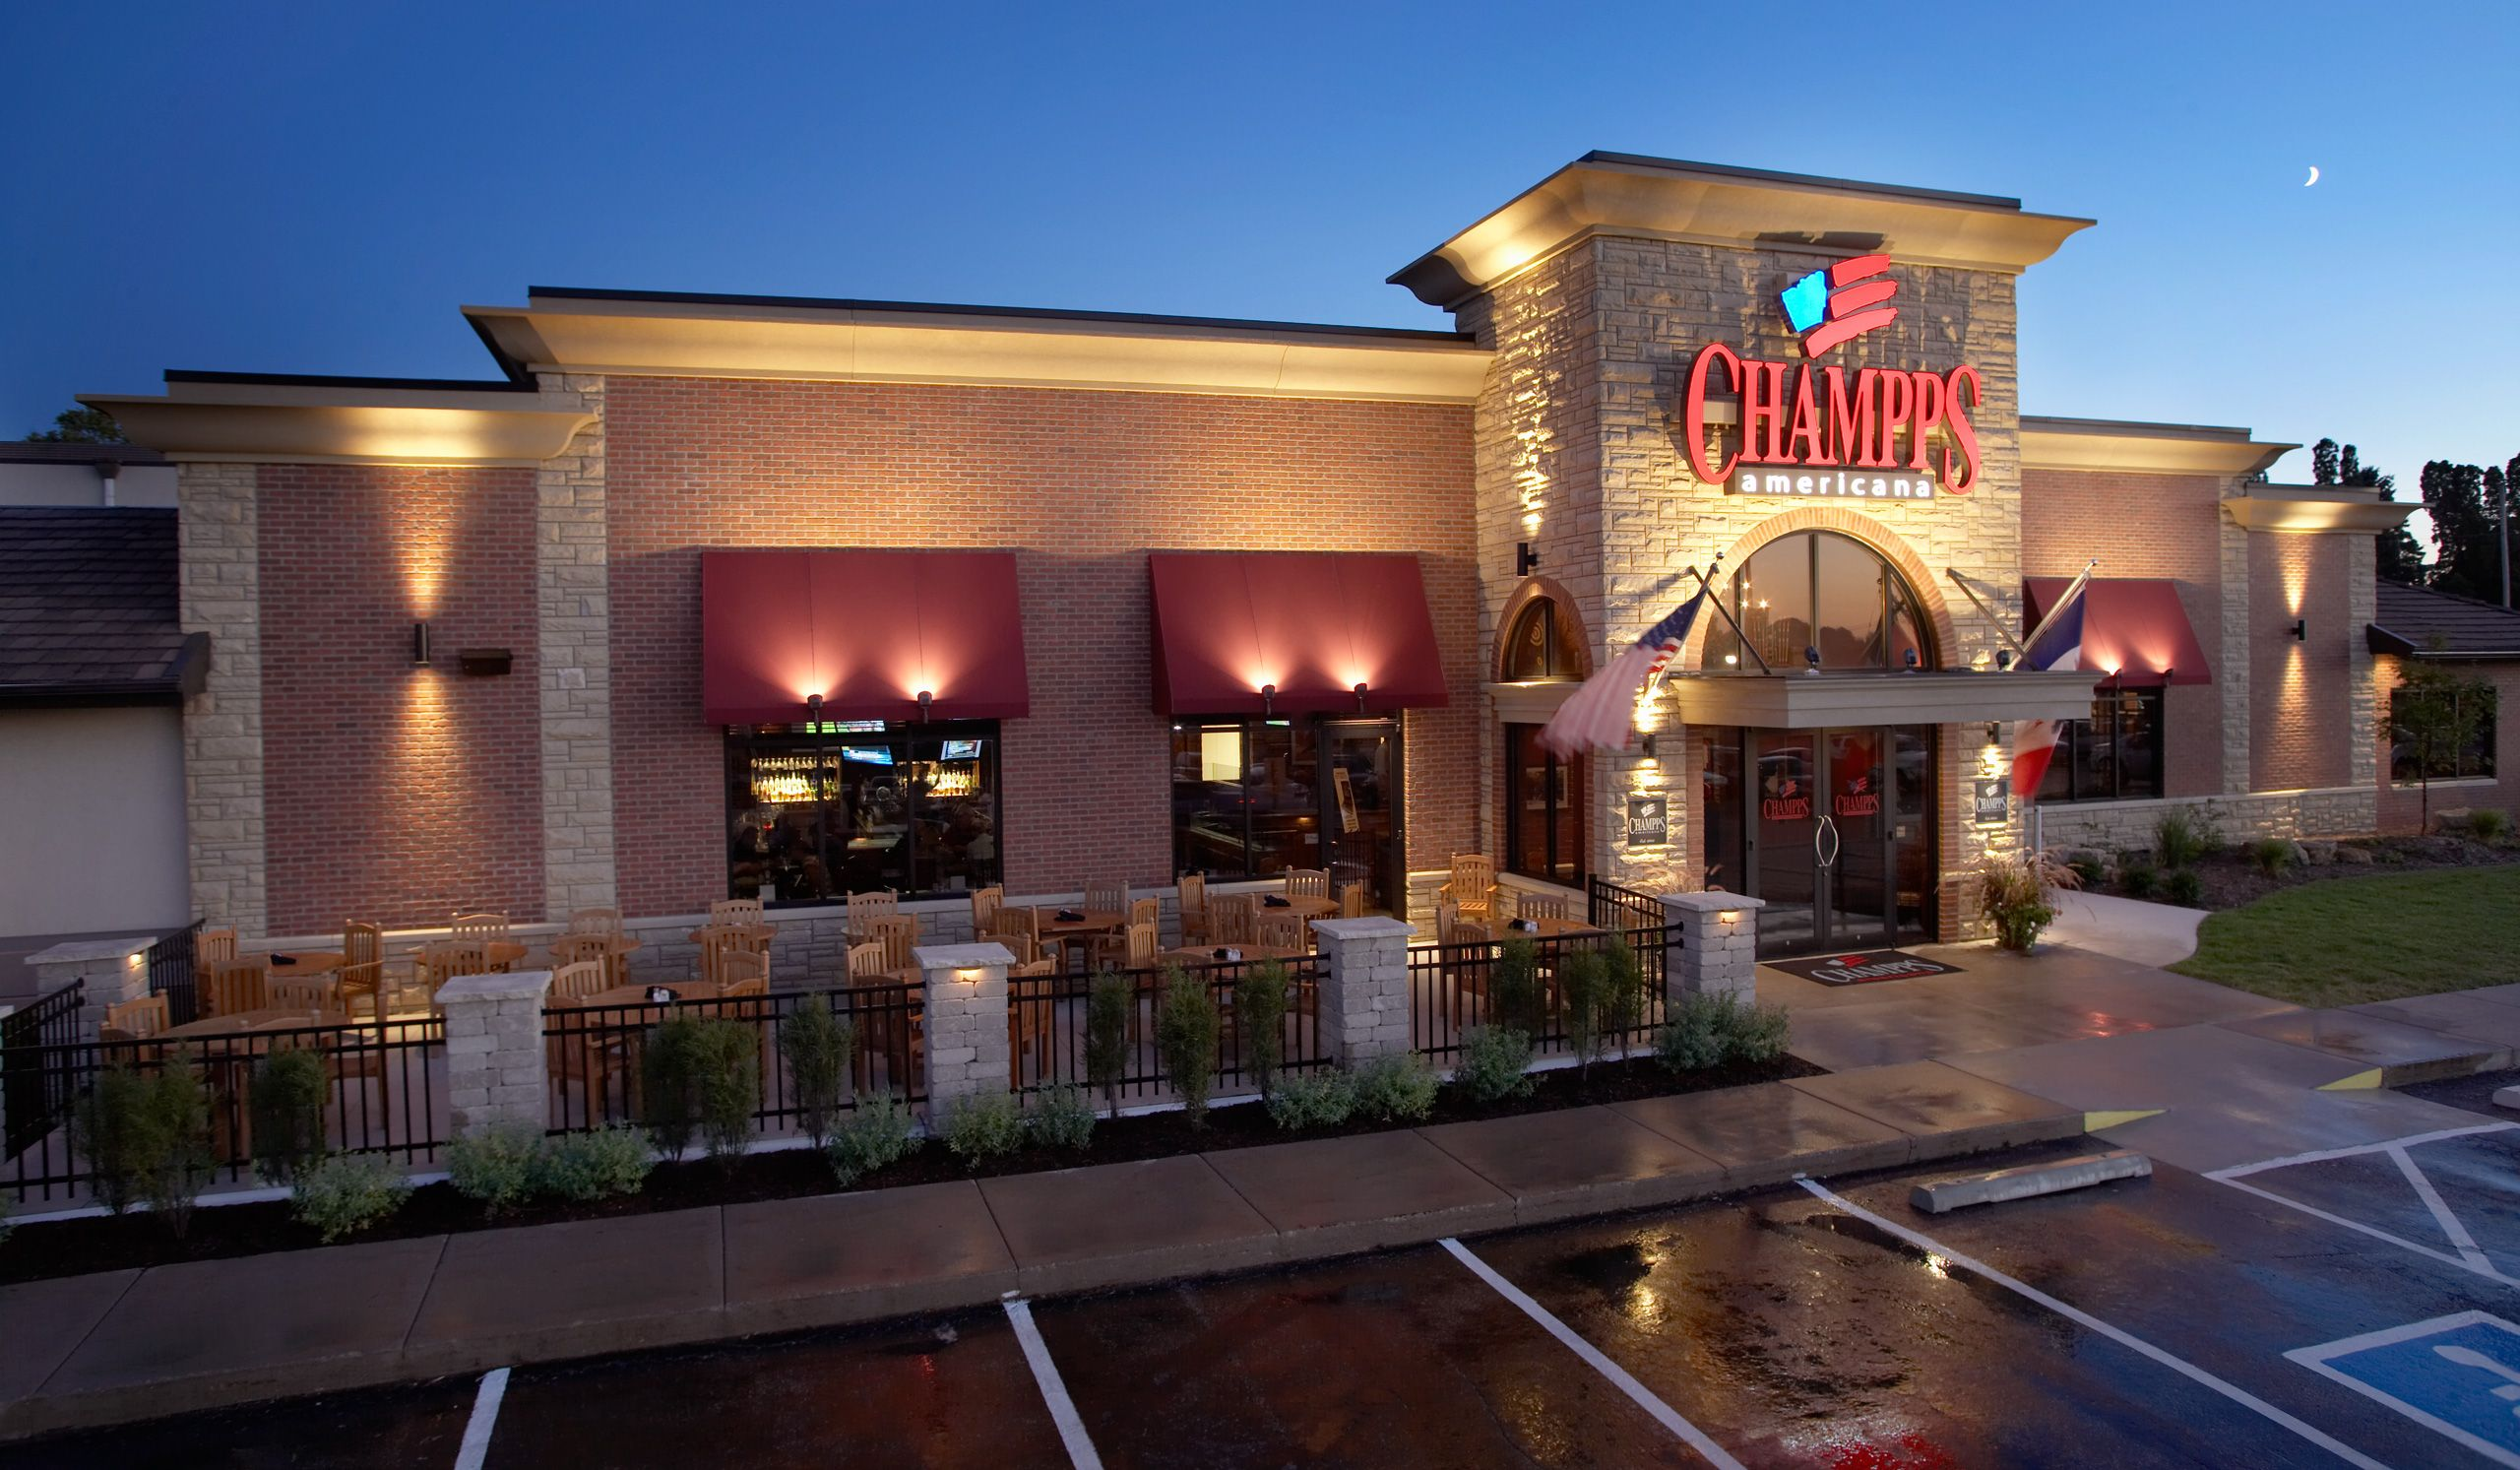 The front of Champps Americana Restaurant  at dusk